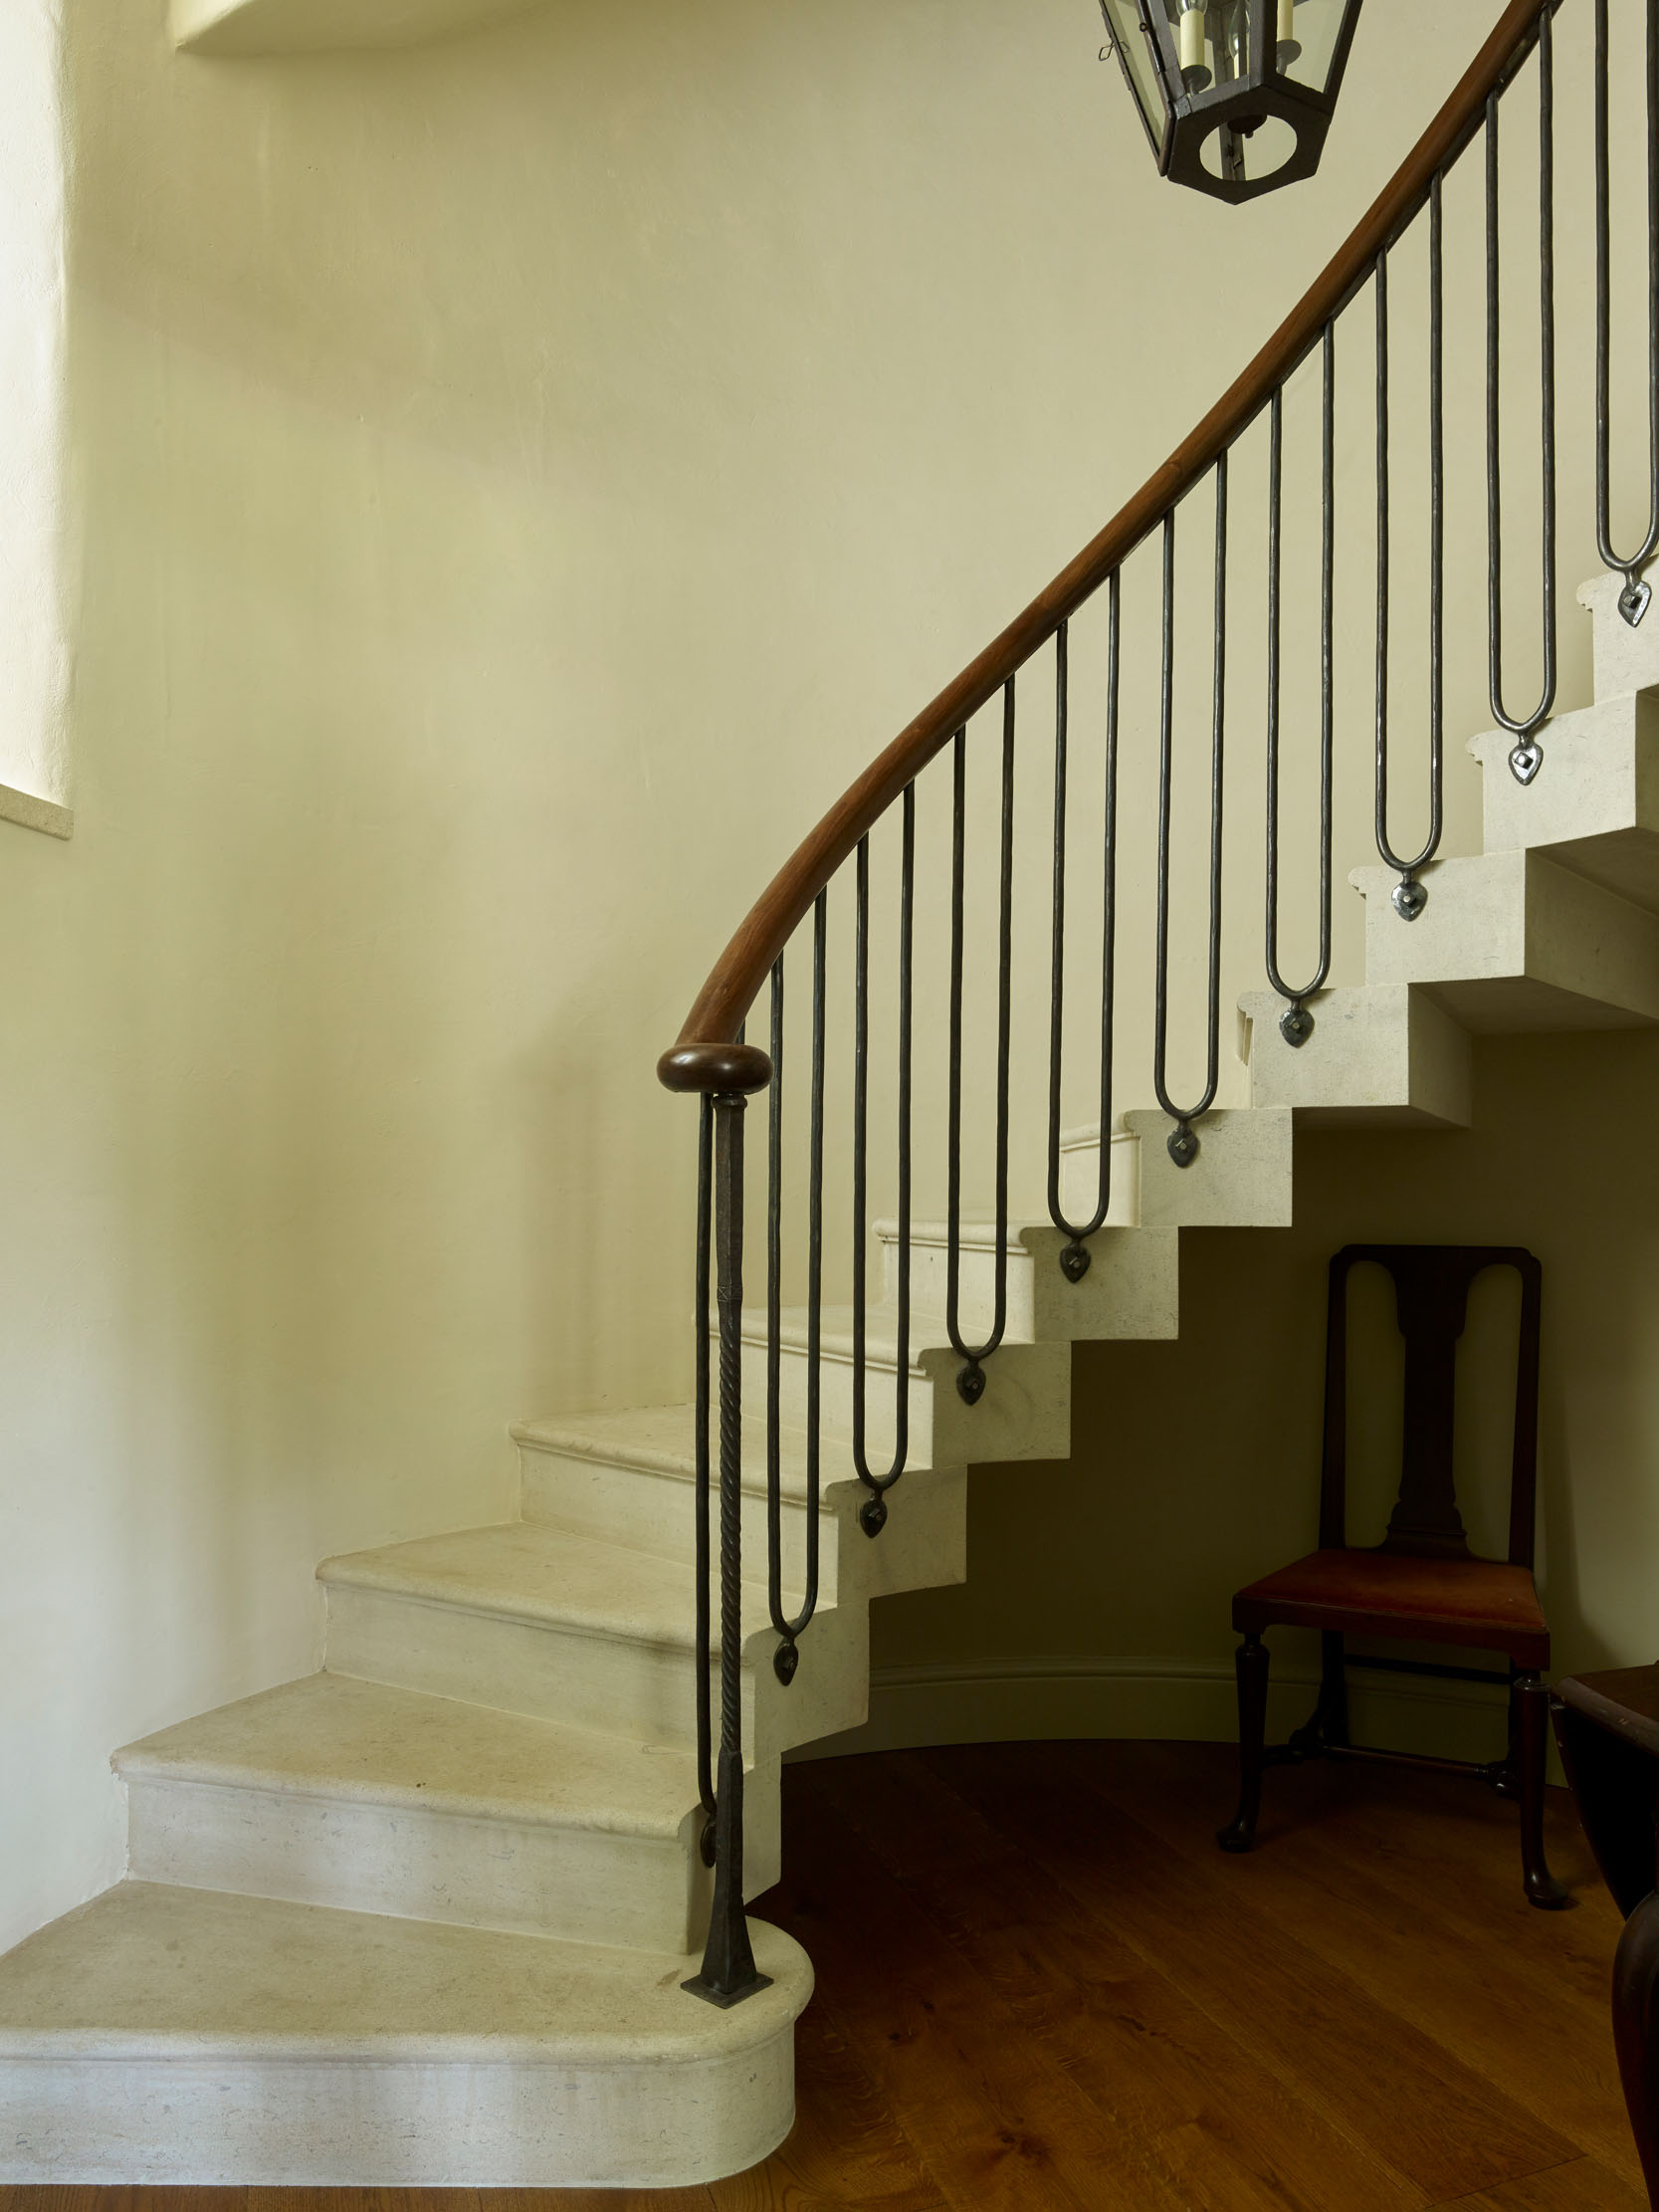 Elegant simplicity: the new cantilevered staircase with ironwork baluster, part of the remodelling and extending that took place between 2014 and 2018. Credit: Paul Highnam/Country Life Library